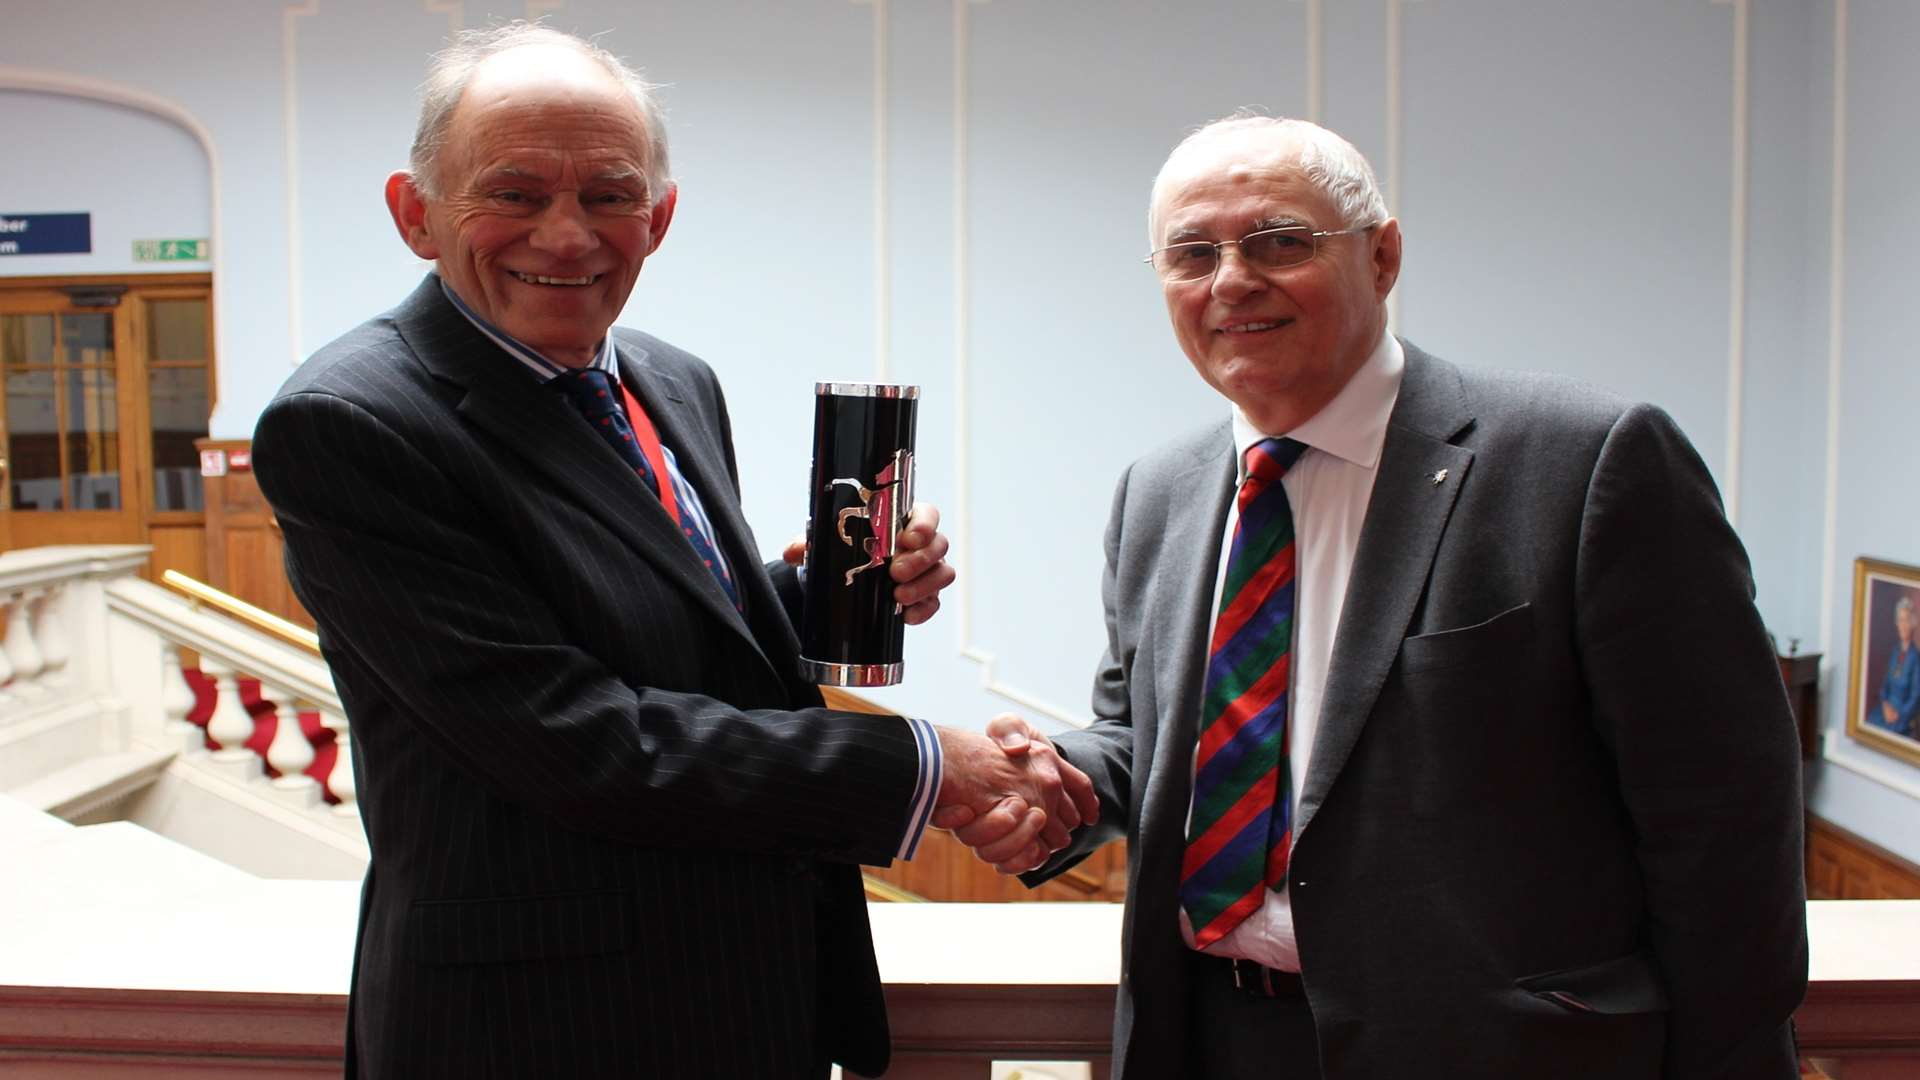 Maidstone Studios owner Geoff Miles, right, is presented with the Kent Invicta Award by KCC chairman David Brazier